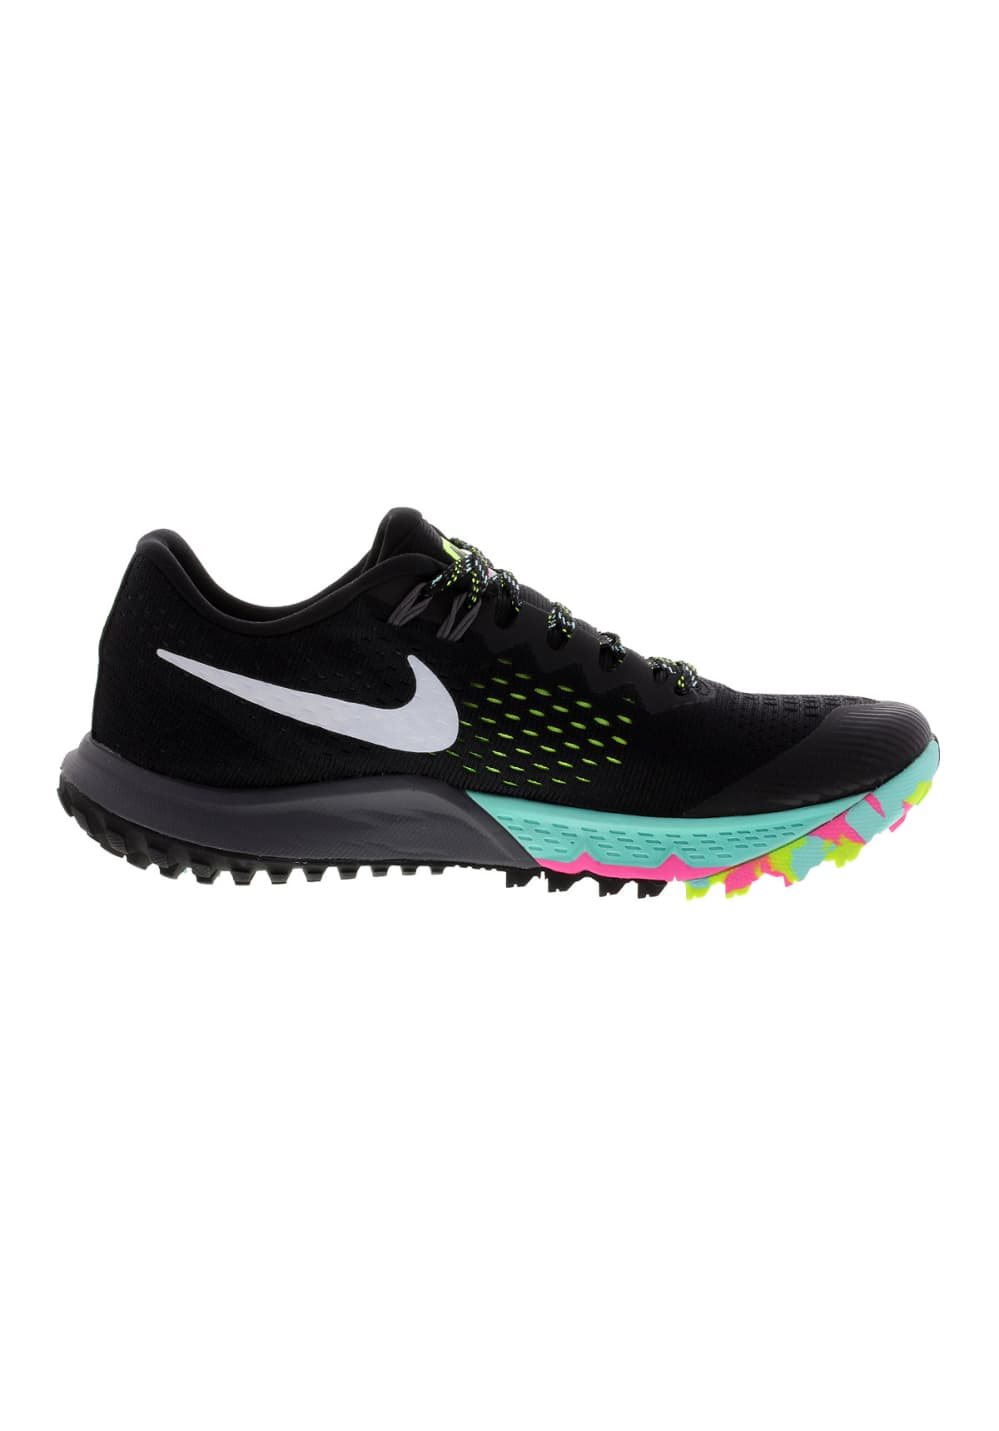 low priced 65f41 eeffd Next. Nike. Air Zoom Terra Kiger 4 - Running shoes for Women